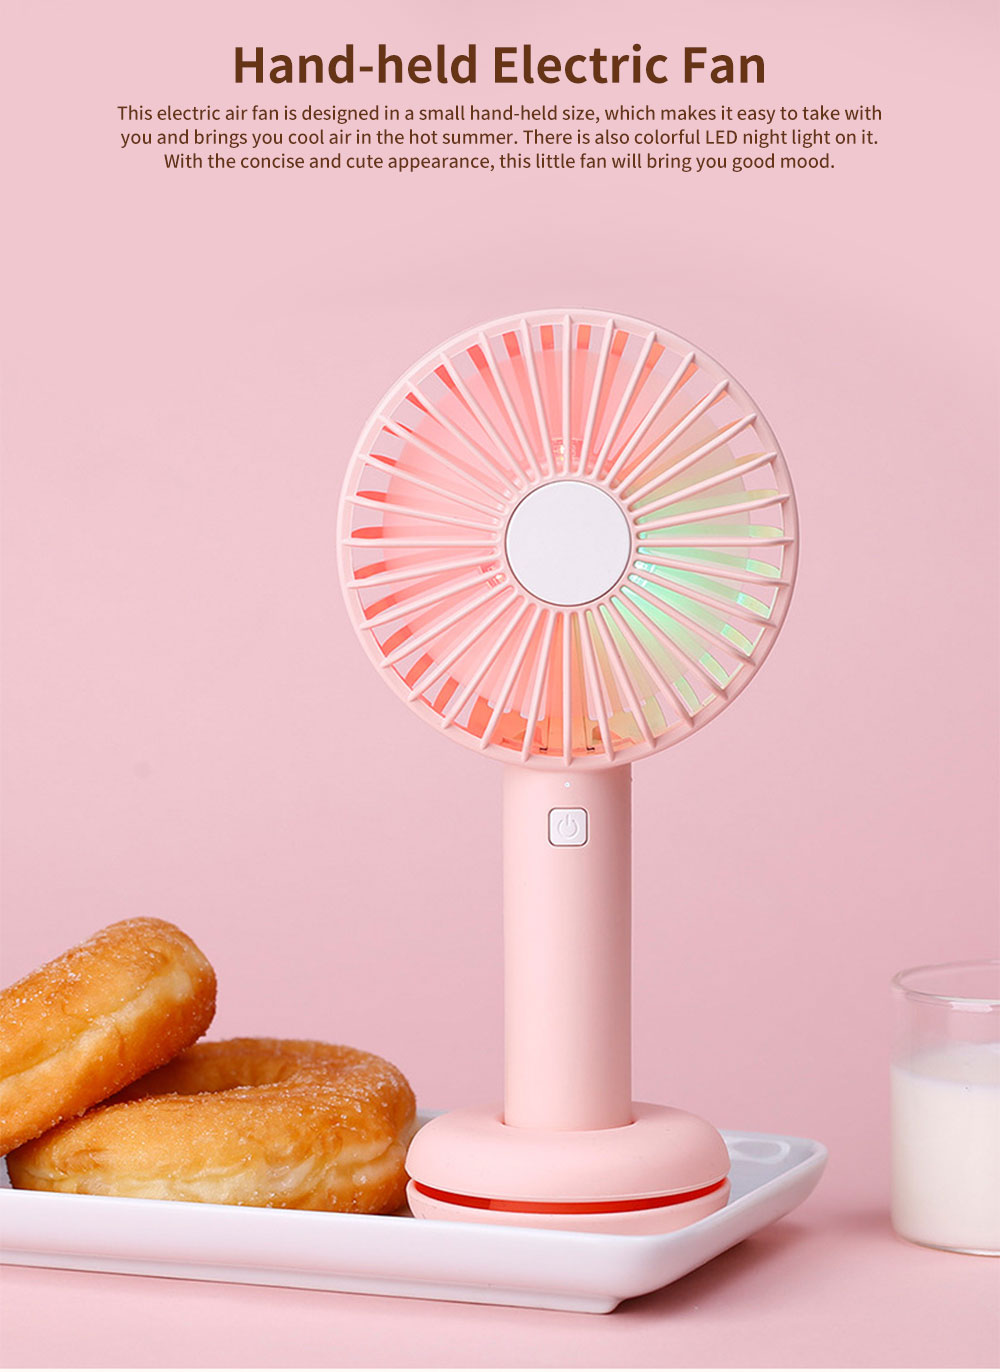 Hand-held Mini-sized Donut Electric Fan with LED Colorful Night Light, Concise ABS and Silica Gel USB Charging Air Fan 0